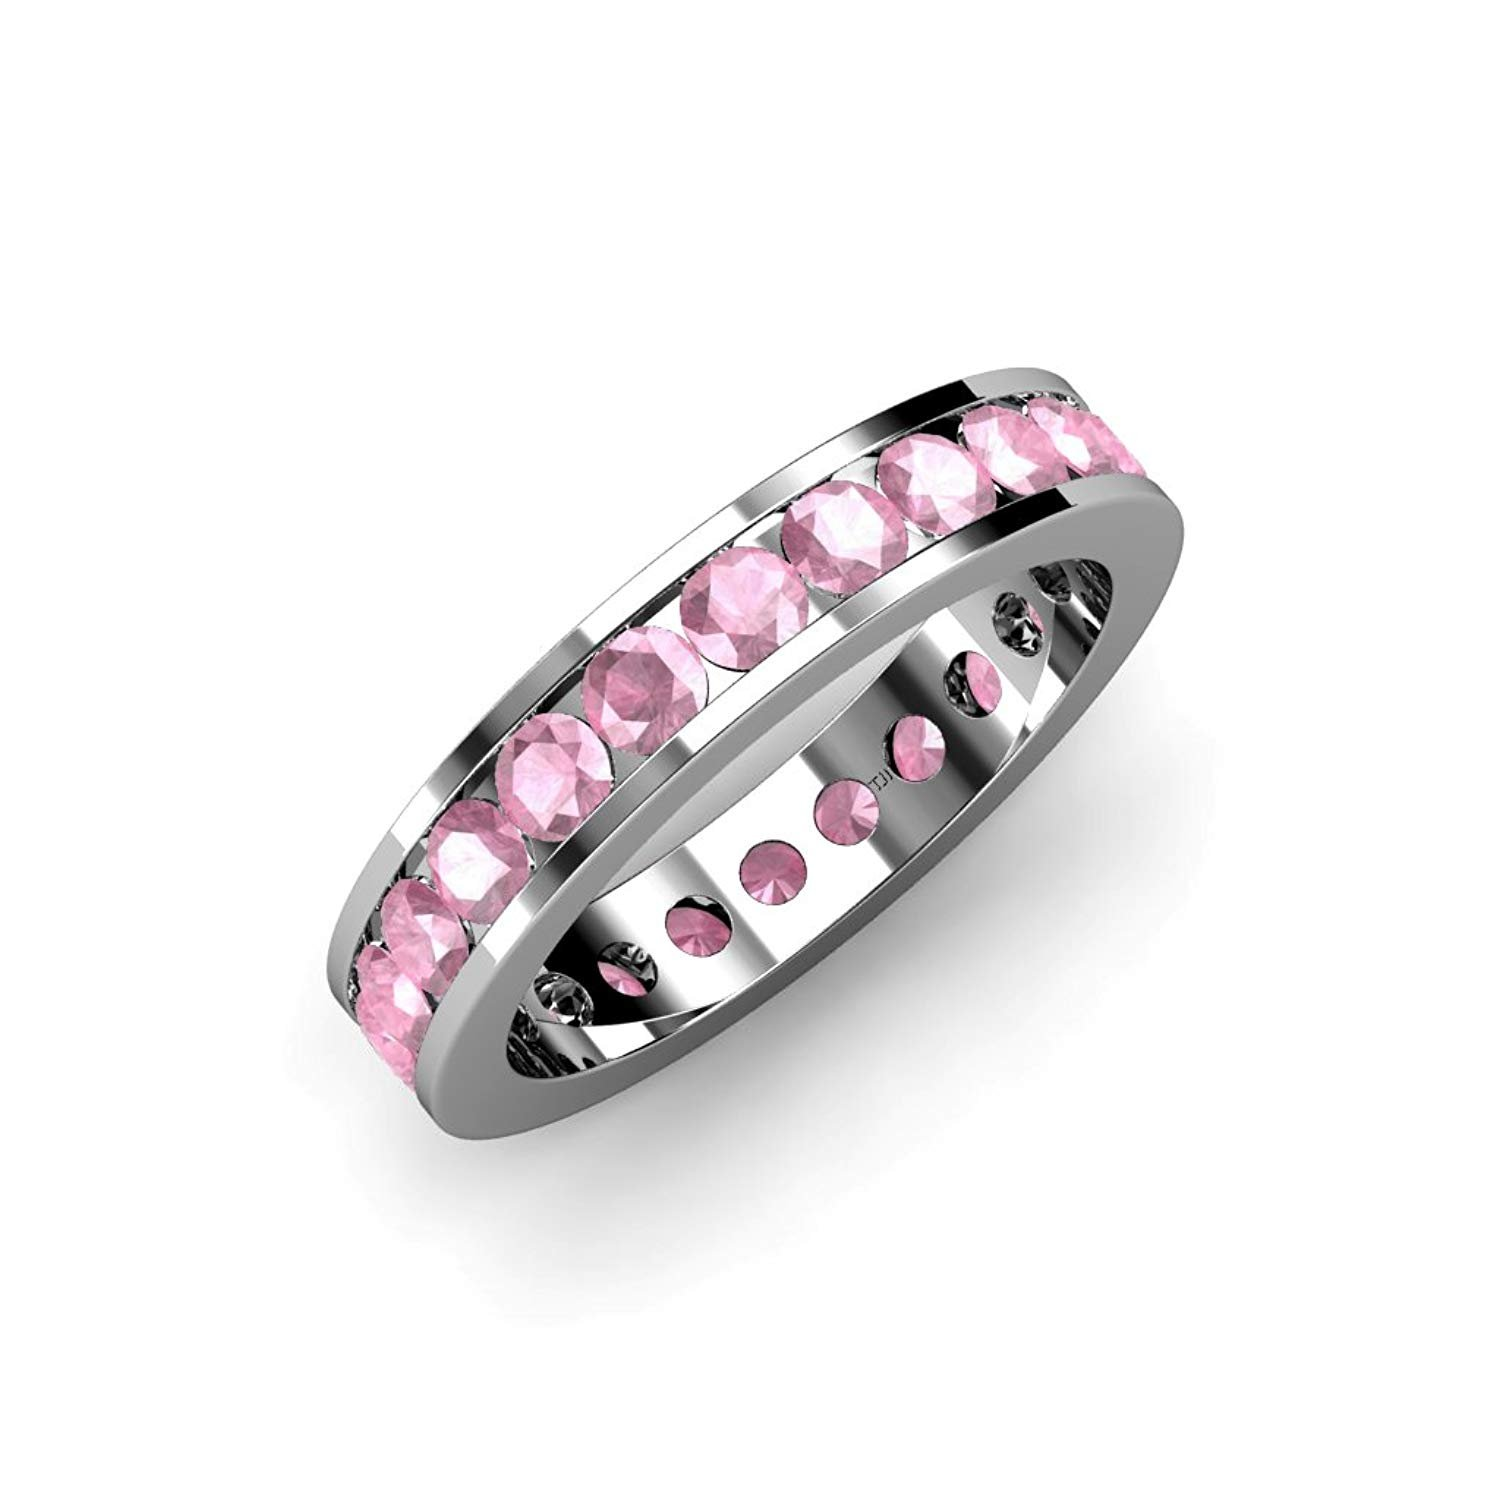 Pink Tourmaline Channel Set Eternity Band 1.99 ct tw to 2.40 ct tw in 14K White Gold.size 5.5 by TriJewels